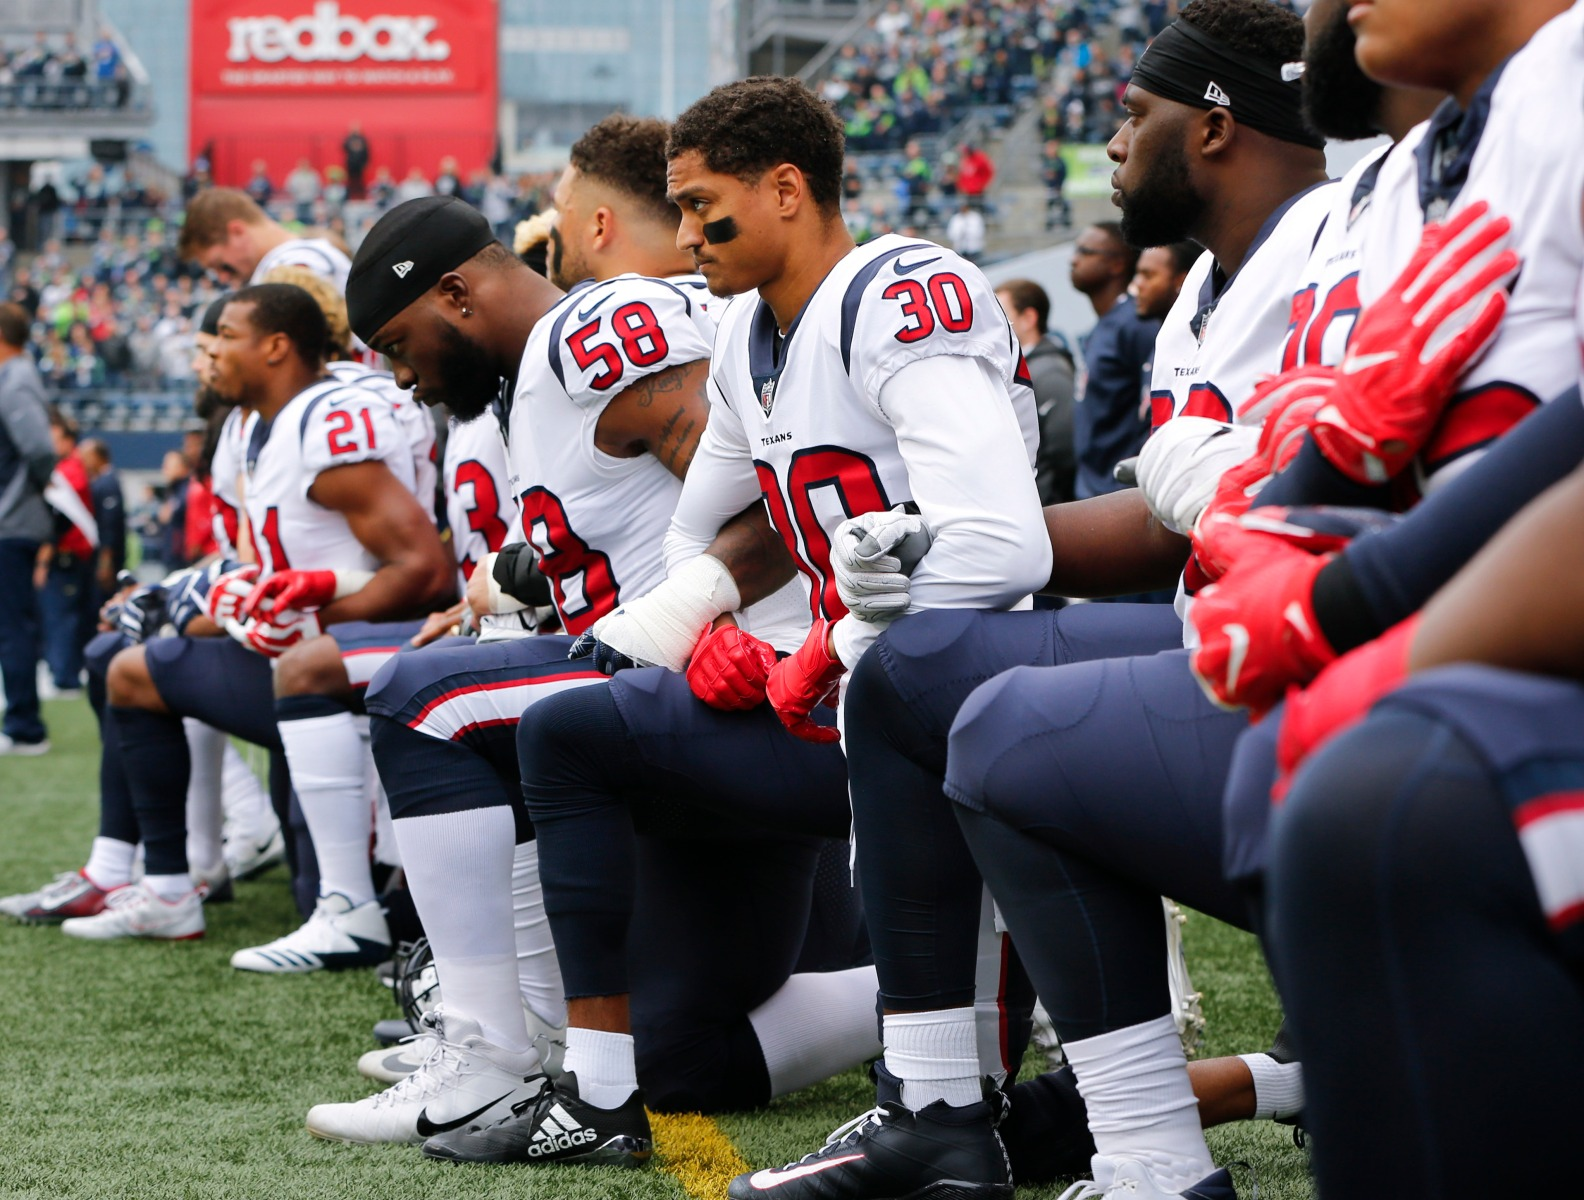 Members of the Houston Texans, including Kevin Johnson #30 and Lamarr Houston #58, kneel during the national anthem before the game at CenturyLink Field on October 29, 2017 in Seattle, Washington.  (Jonathan Ferrey/Getty Images)